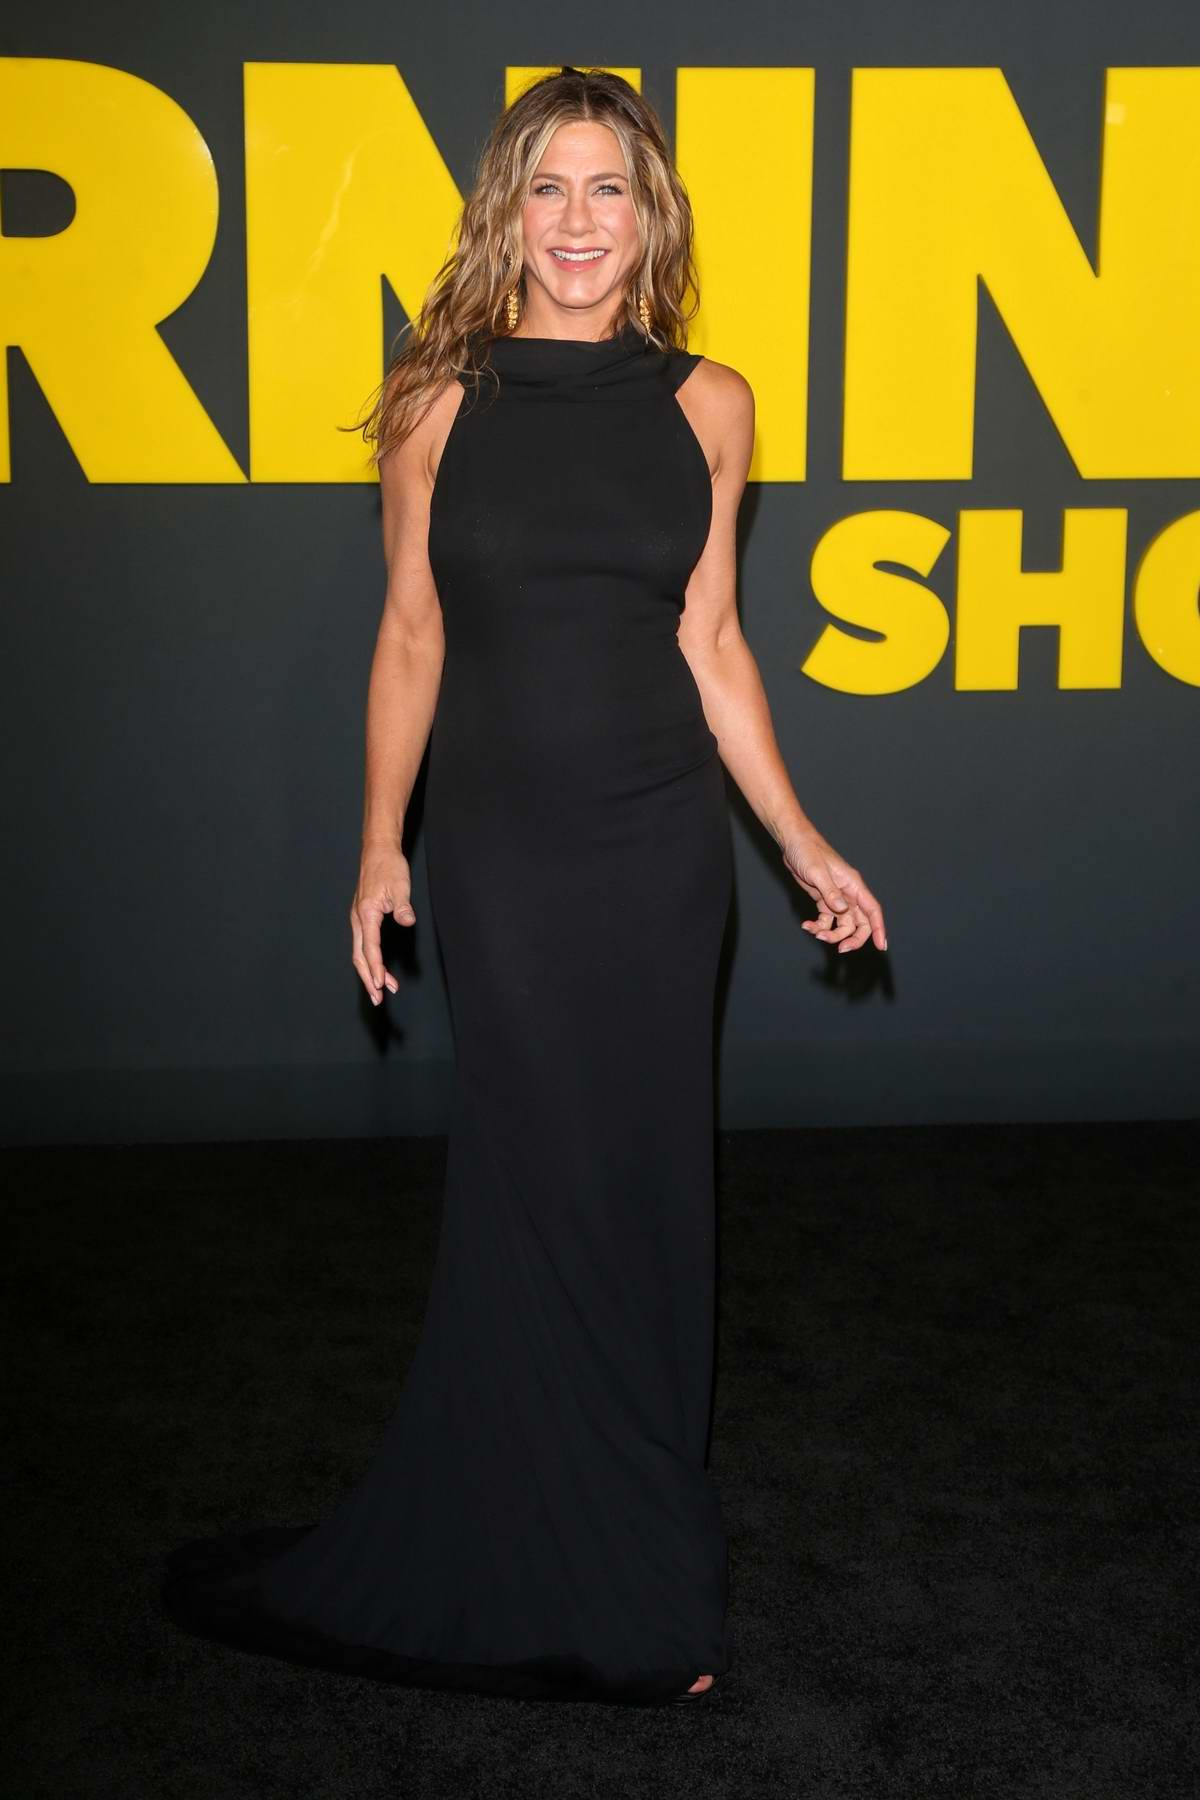 Jennifer Aniston attends the Premiere of Apple TV+'s 'The Morning Show' at Lincoln Center in New York City